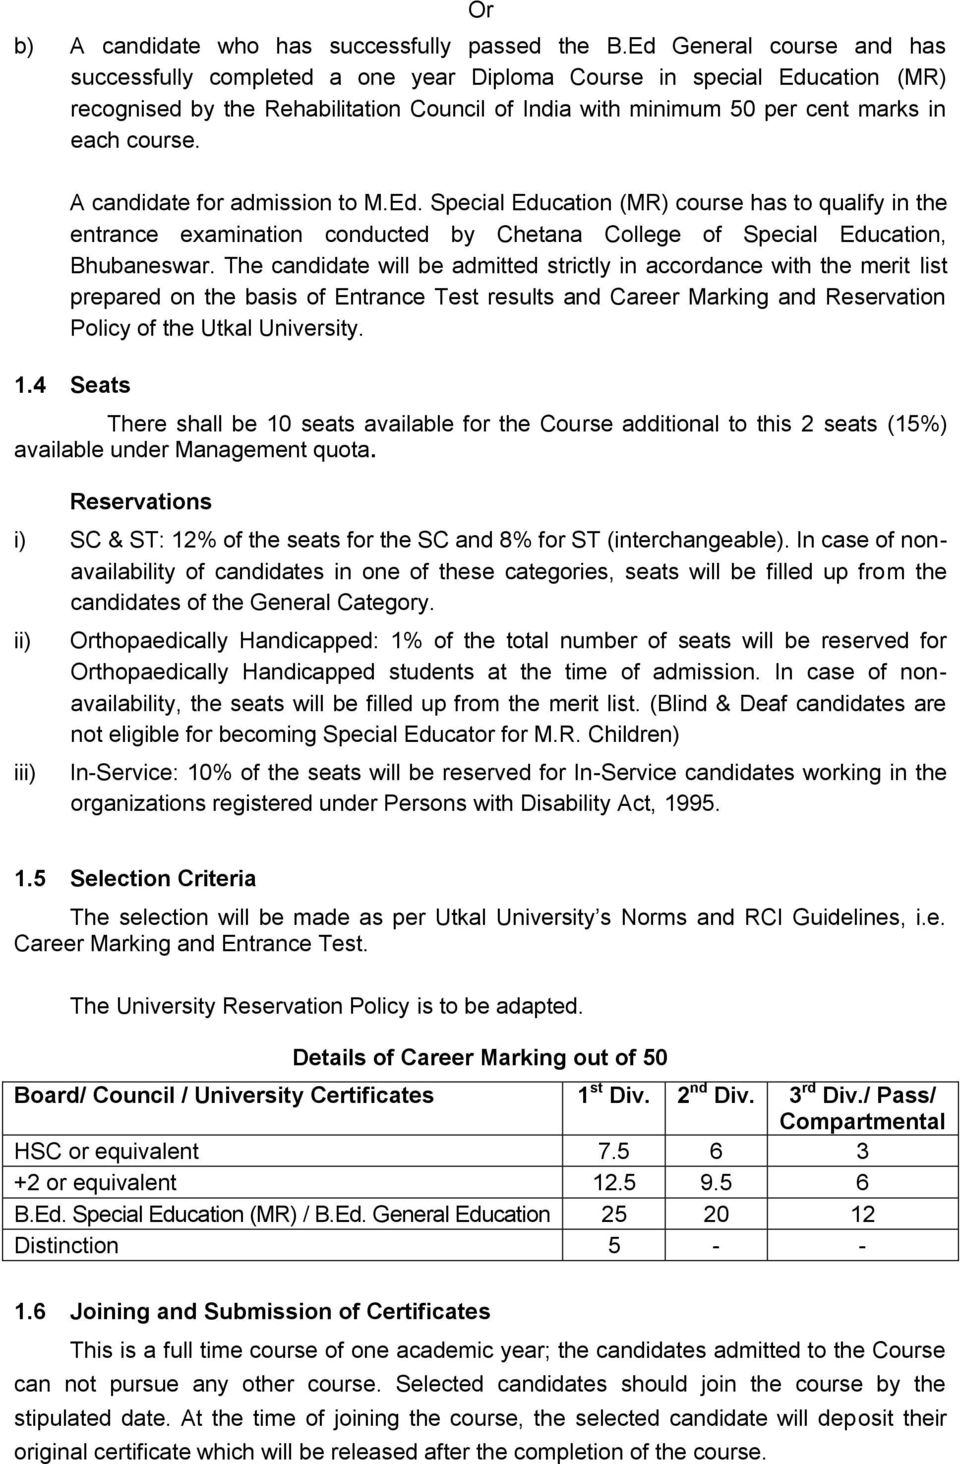 A candidate for admission to M.Ed. Special Education (MR) course has to qualify in the entrance examination conducted by Chetana College of Special Education, Bhubaneswar.